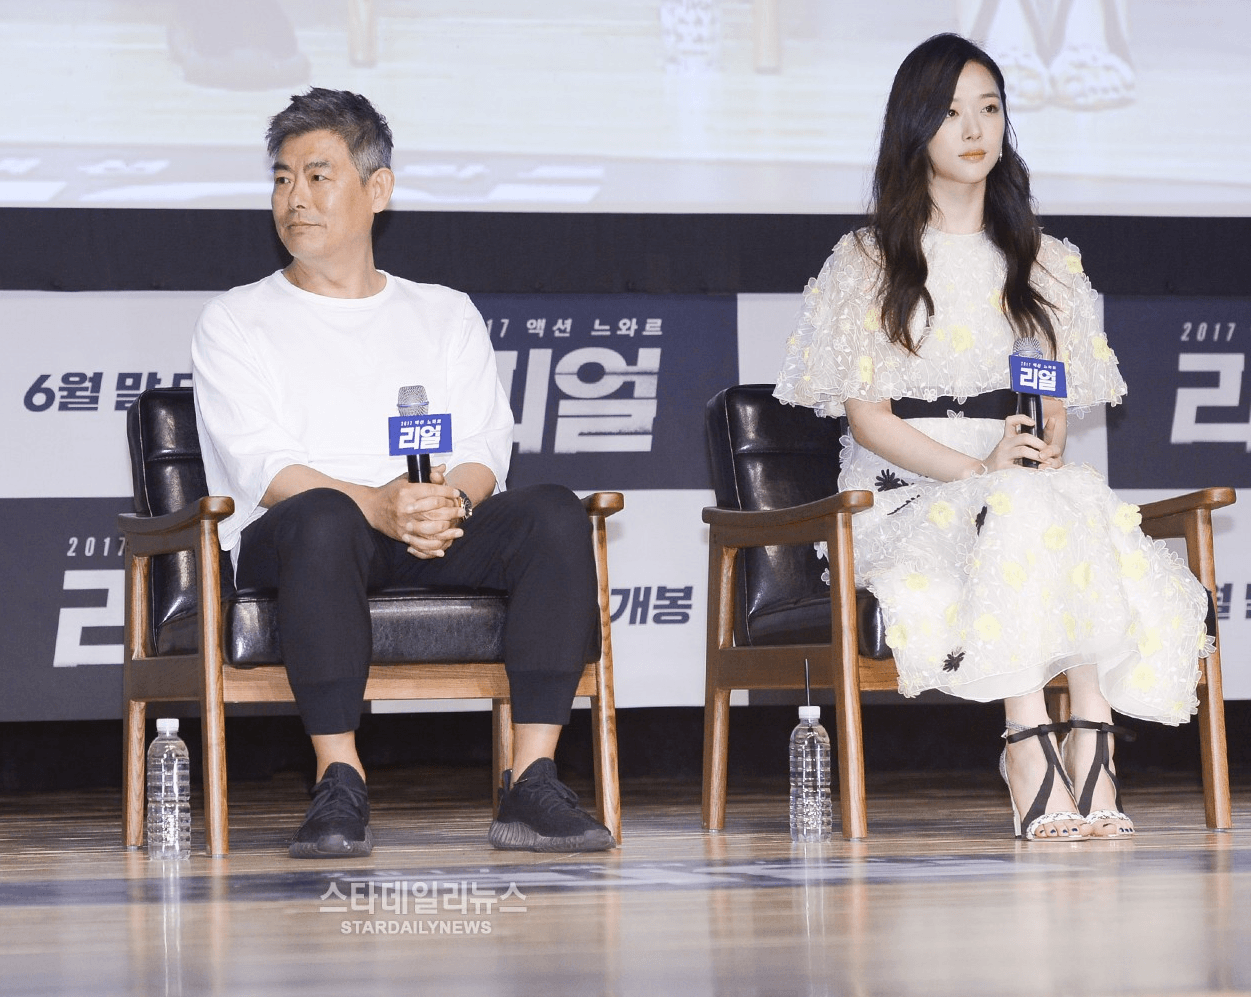 Actor Publicly Criticizes Sulli For Being Late To A Press Conference